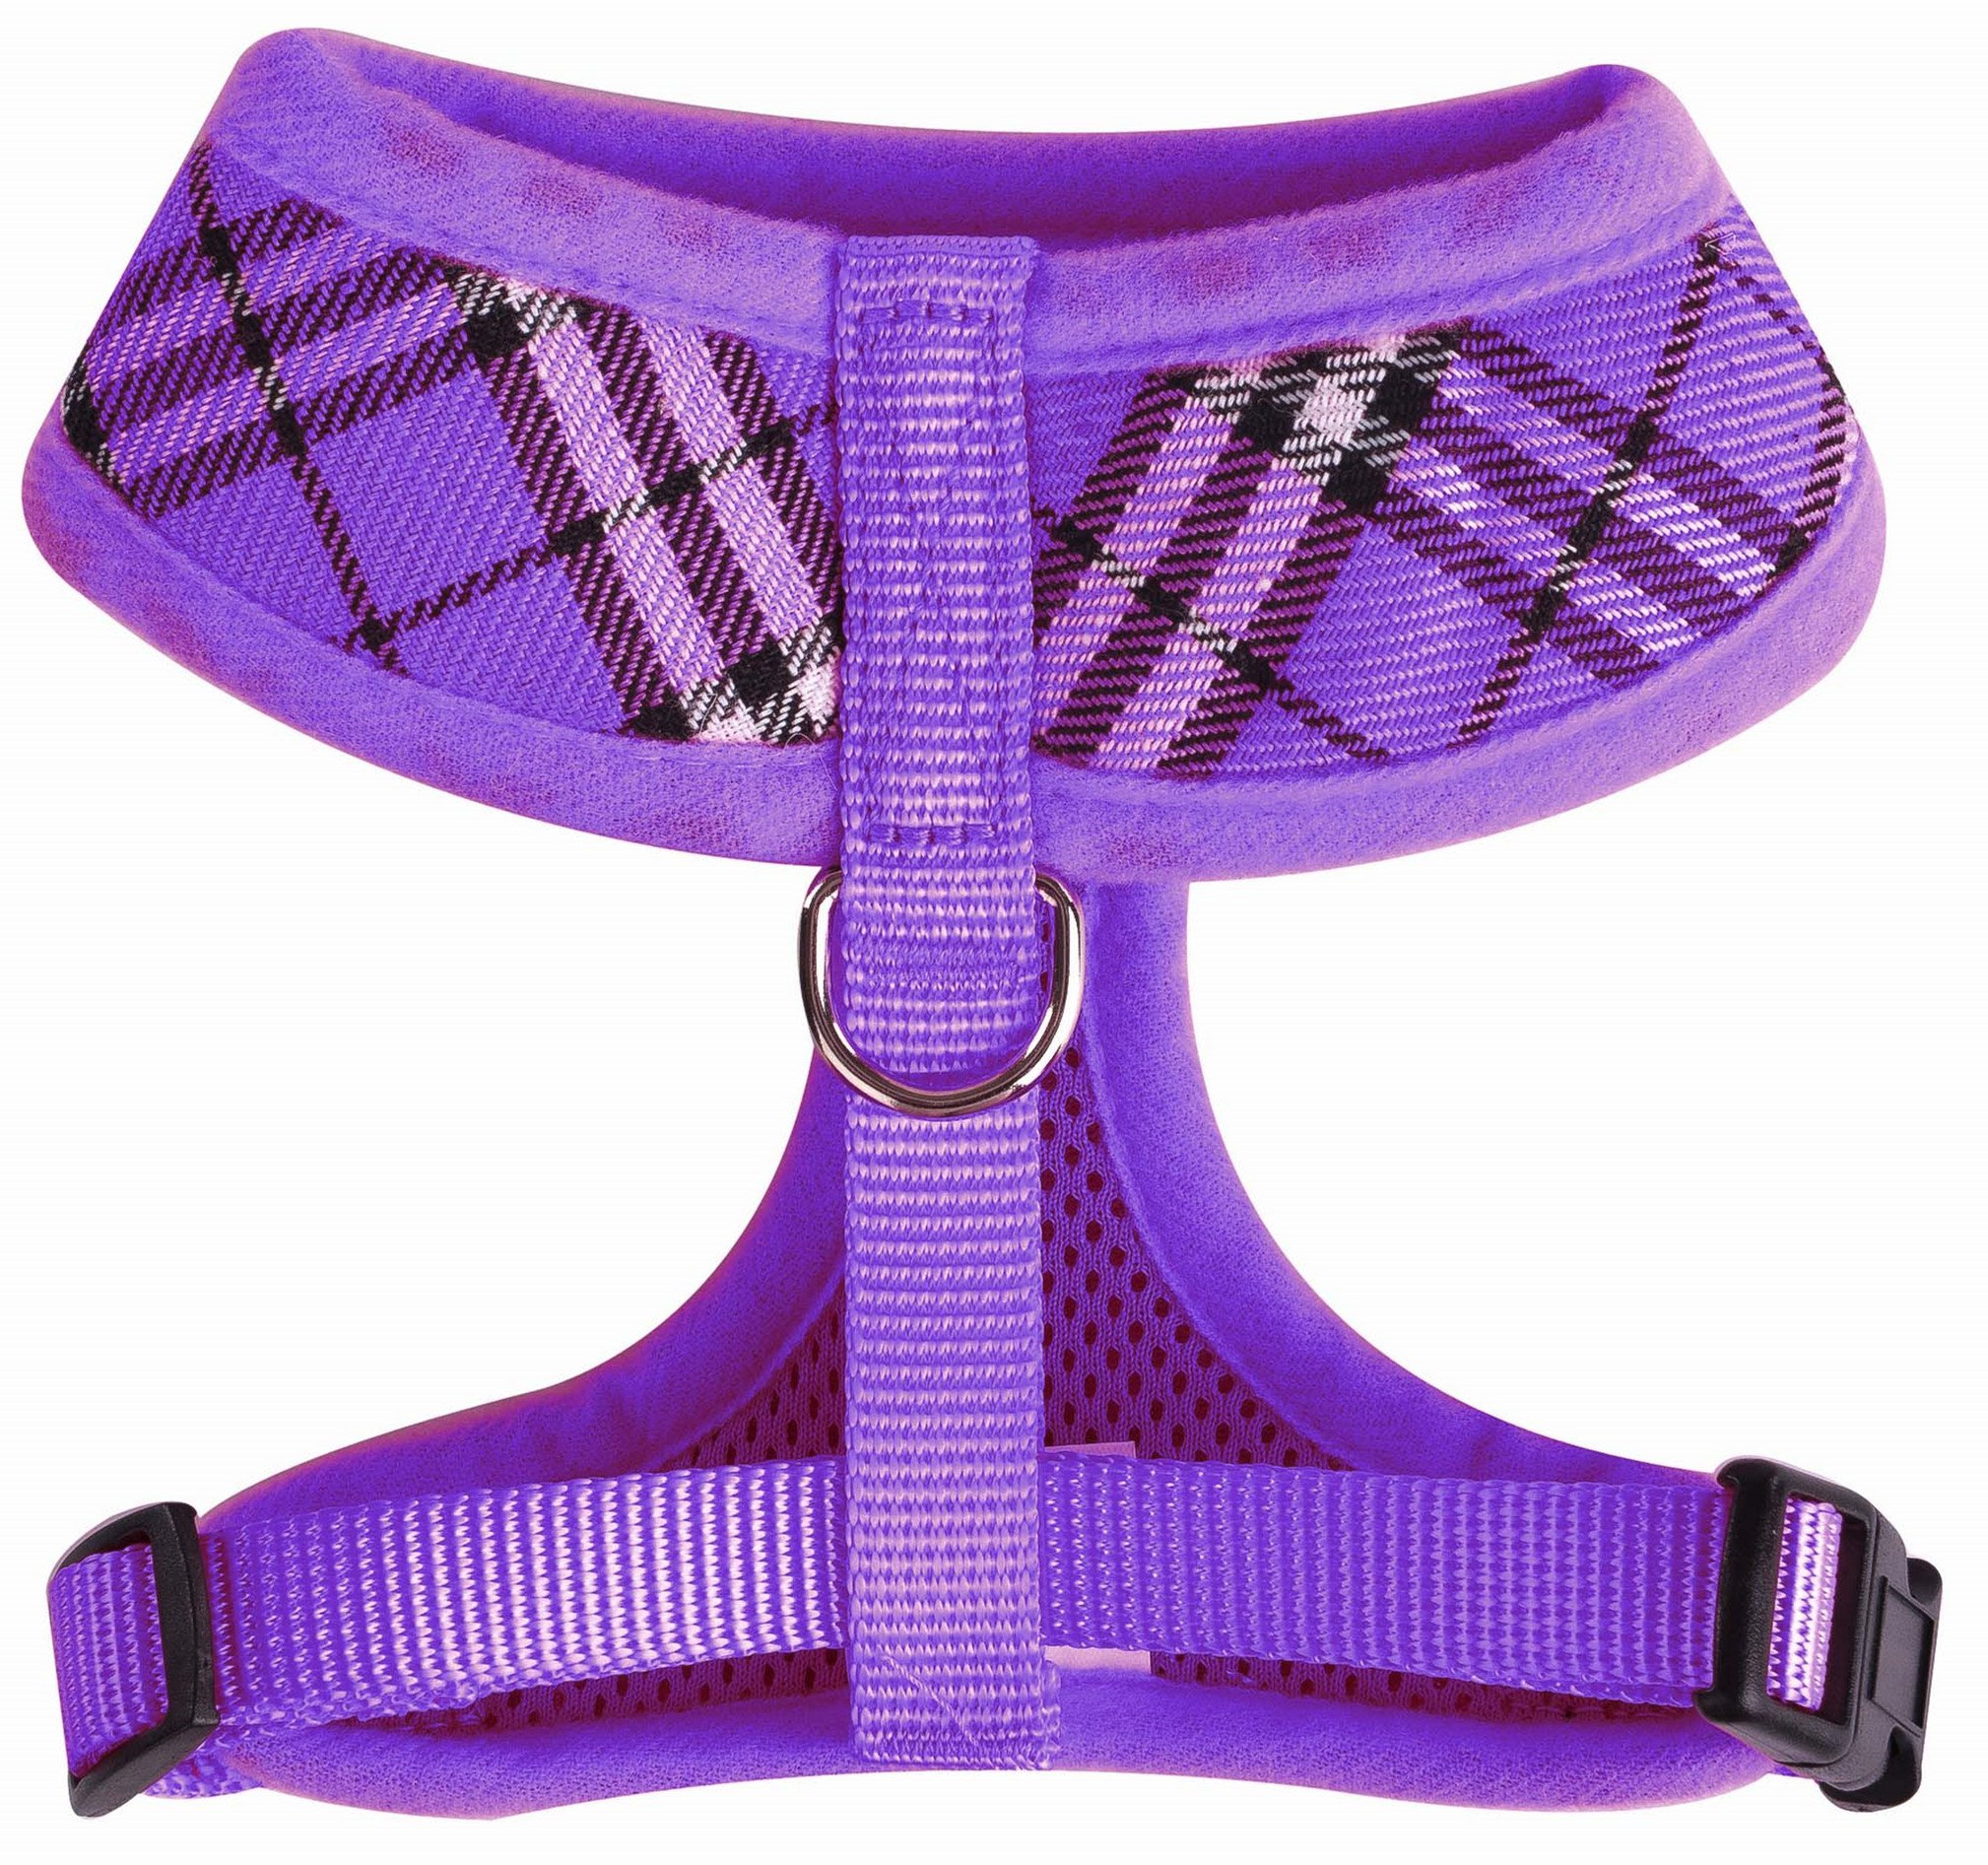 PUPTECK Soft Mesh Dog Harness Pet Puppy Comfort Padded Vest No Pull Harnesses, Purple Medium by PUPTECK (Image #2)